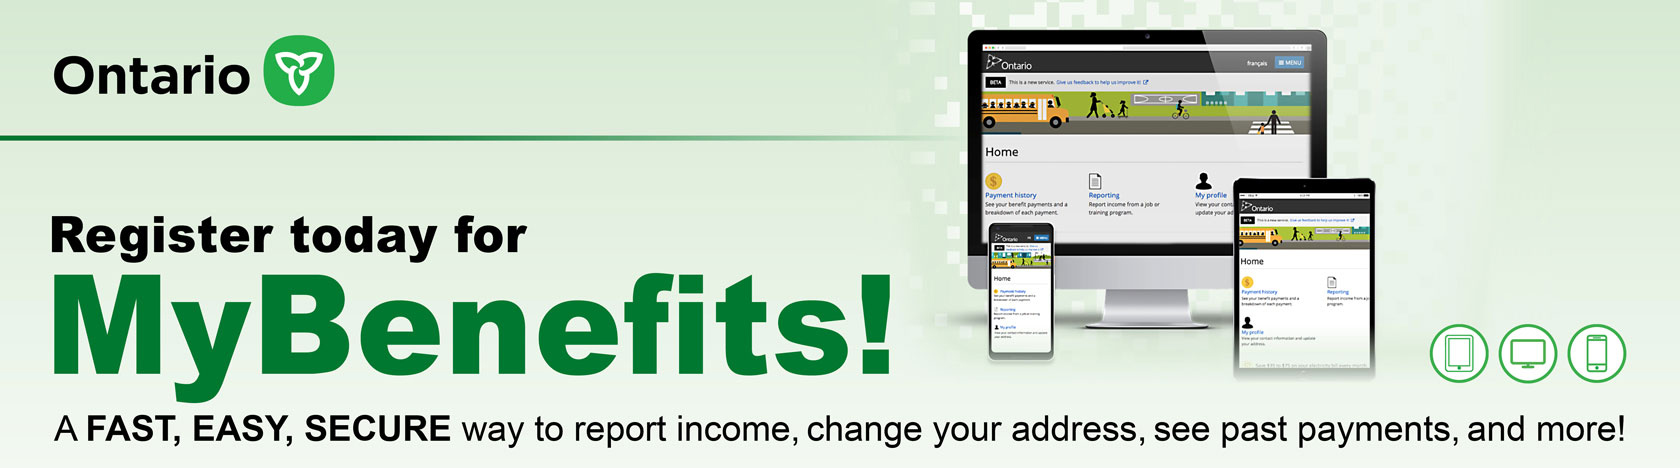 Register to access your OW file and submit your information online at MyBenefits.ca